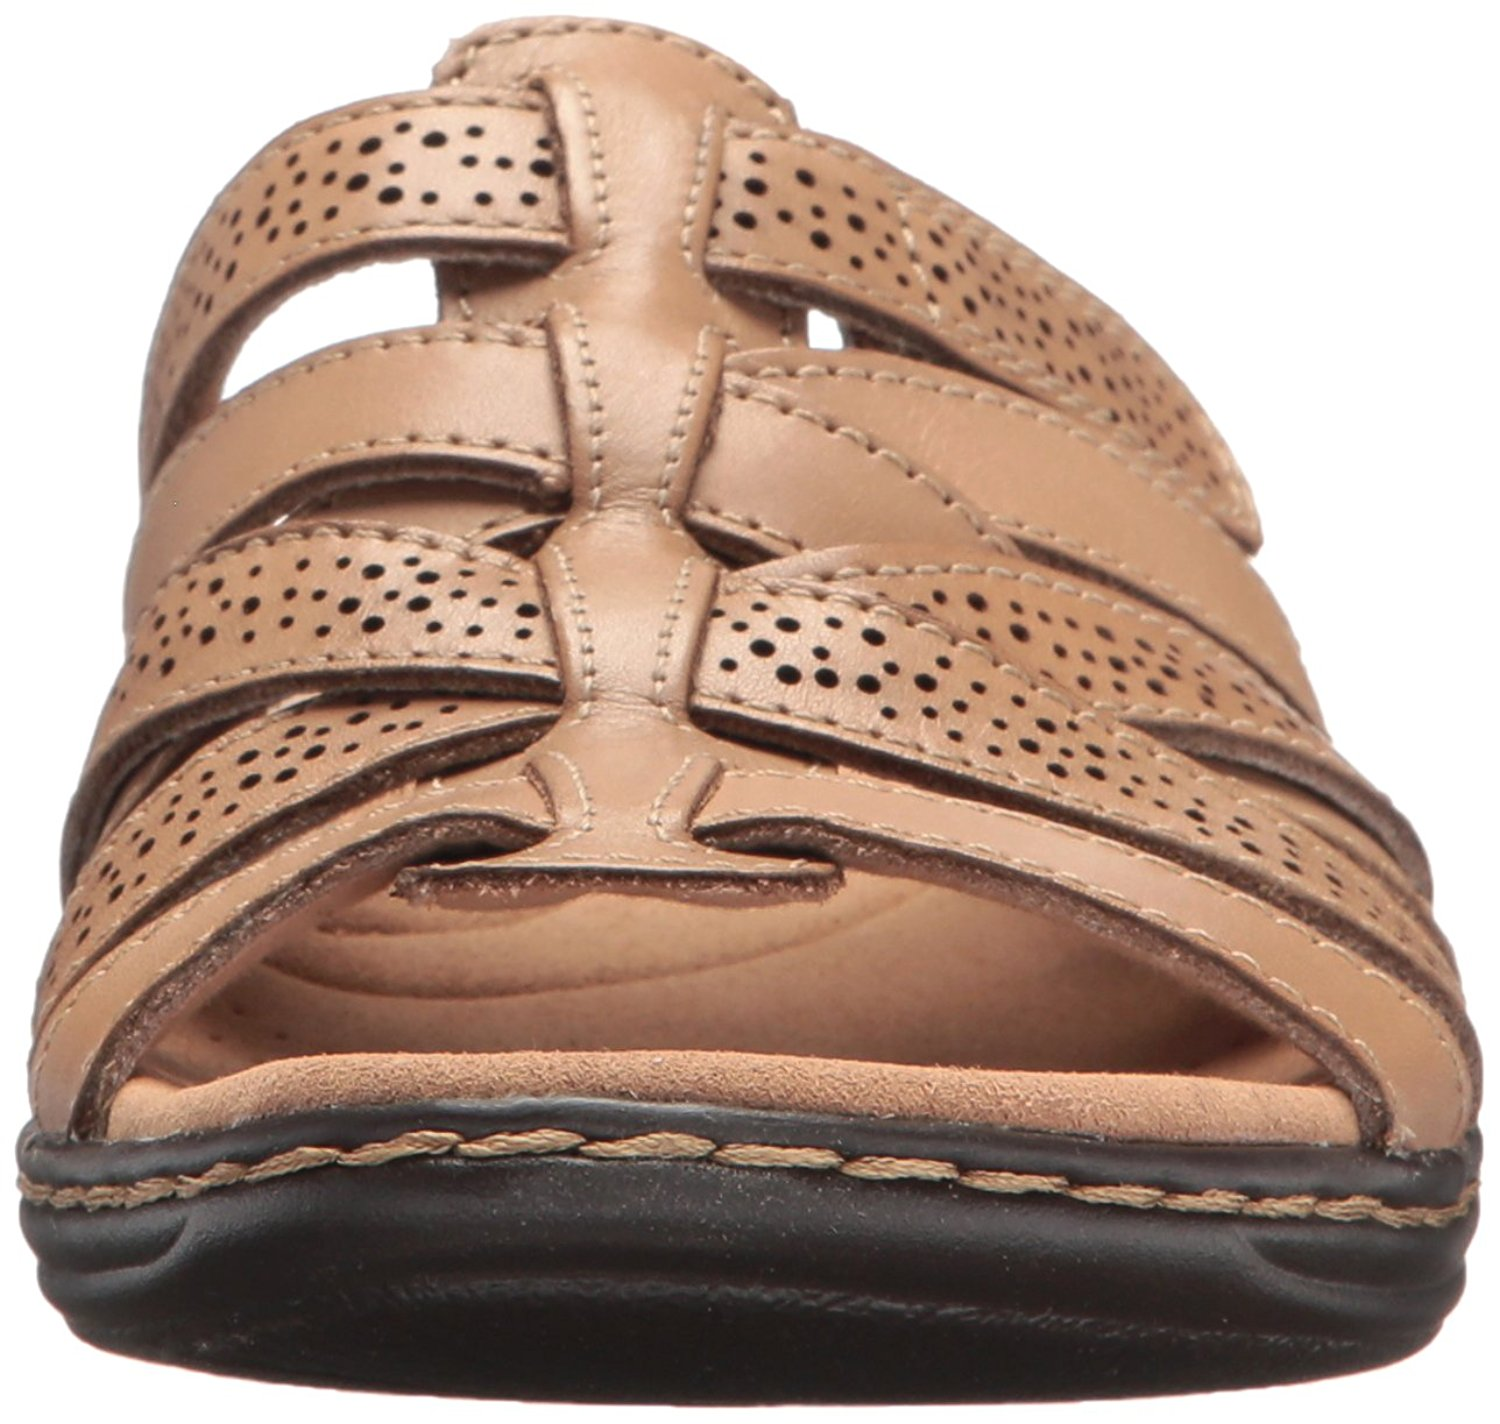 b25dfad6901a CLARKS Womens leisa fields Open Toe Casual Slide Sandals